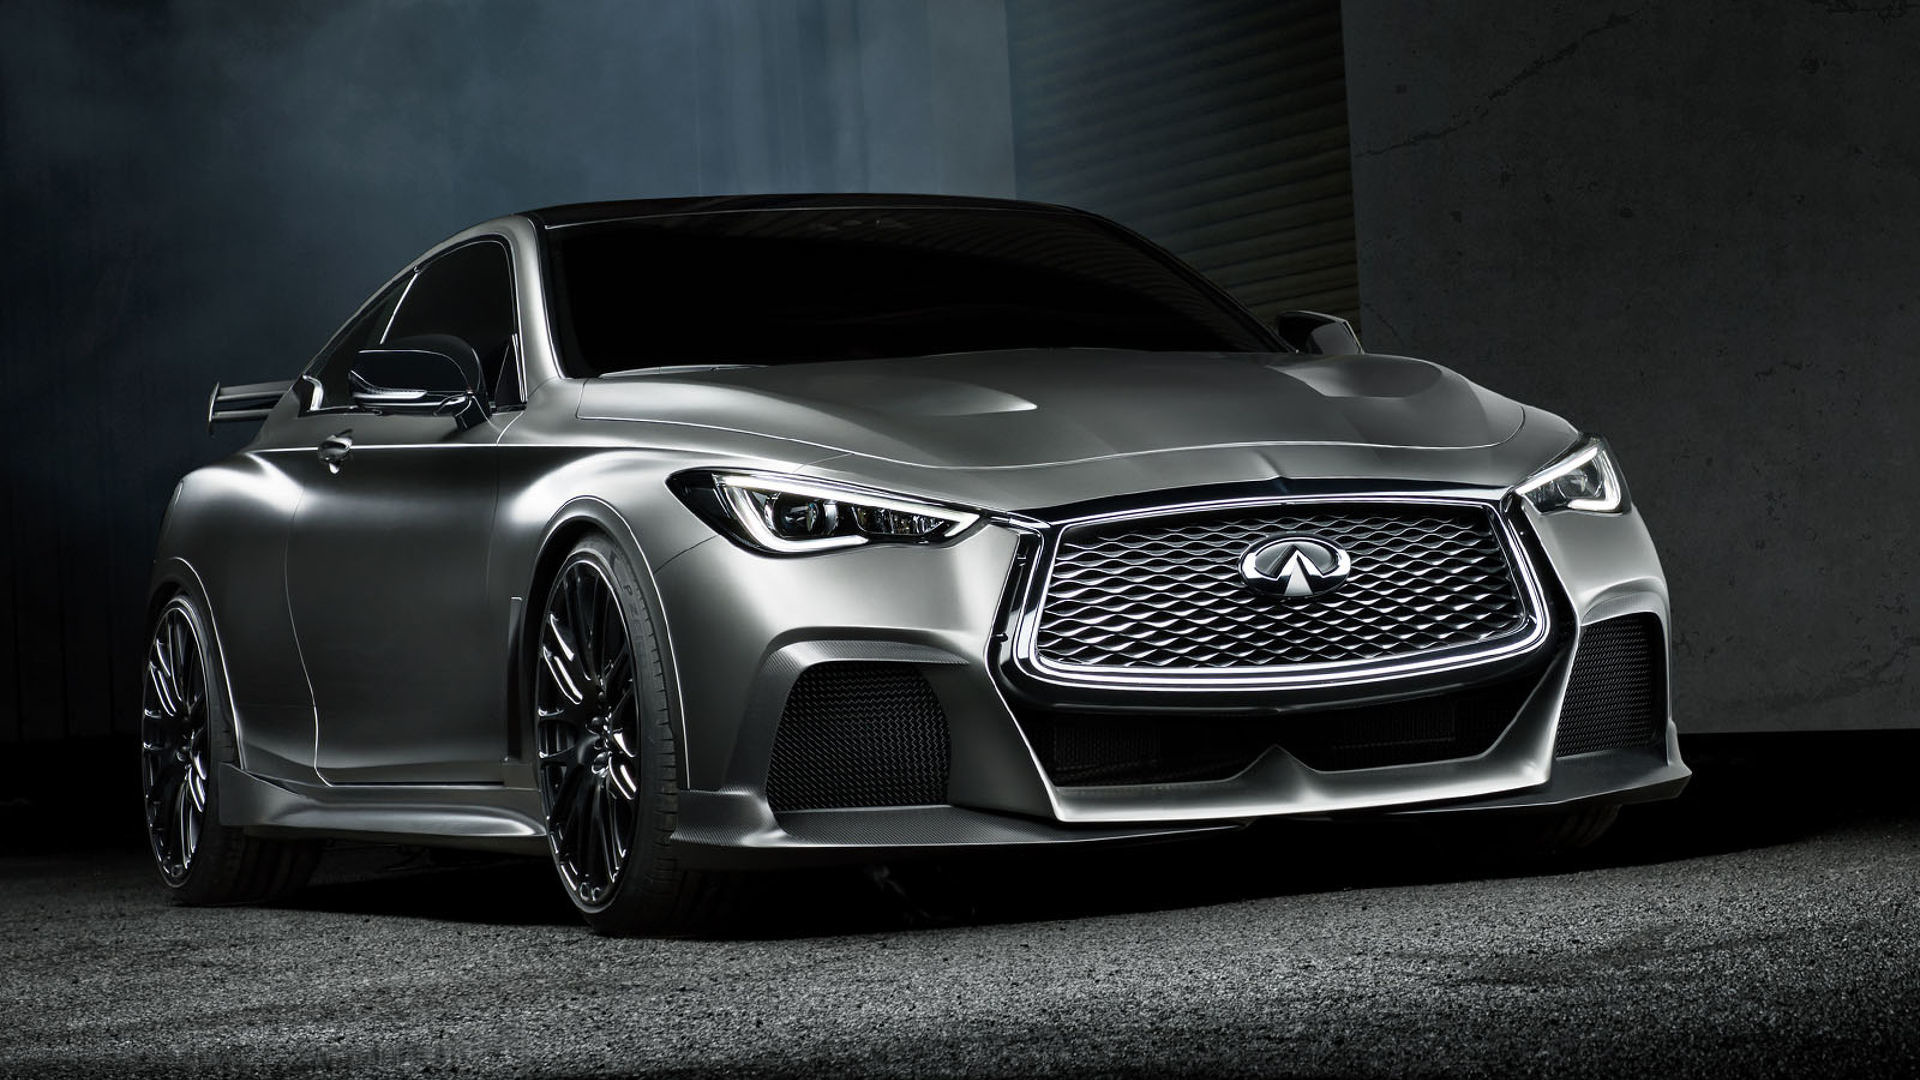 61 The 2020 Infiniti Q60 Coupe Wallpaper